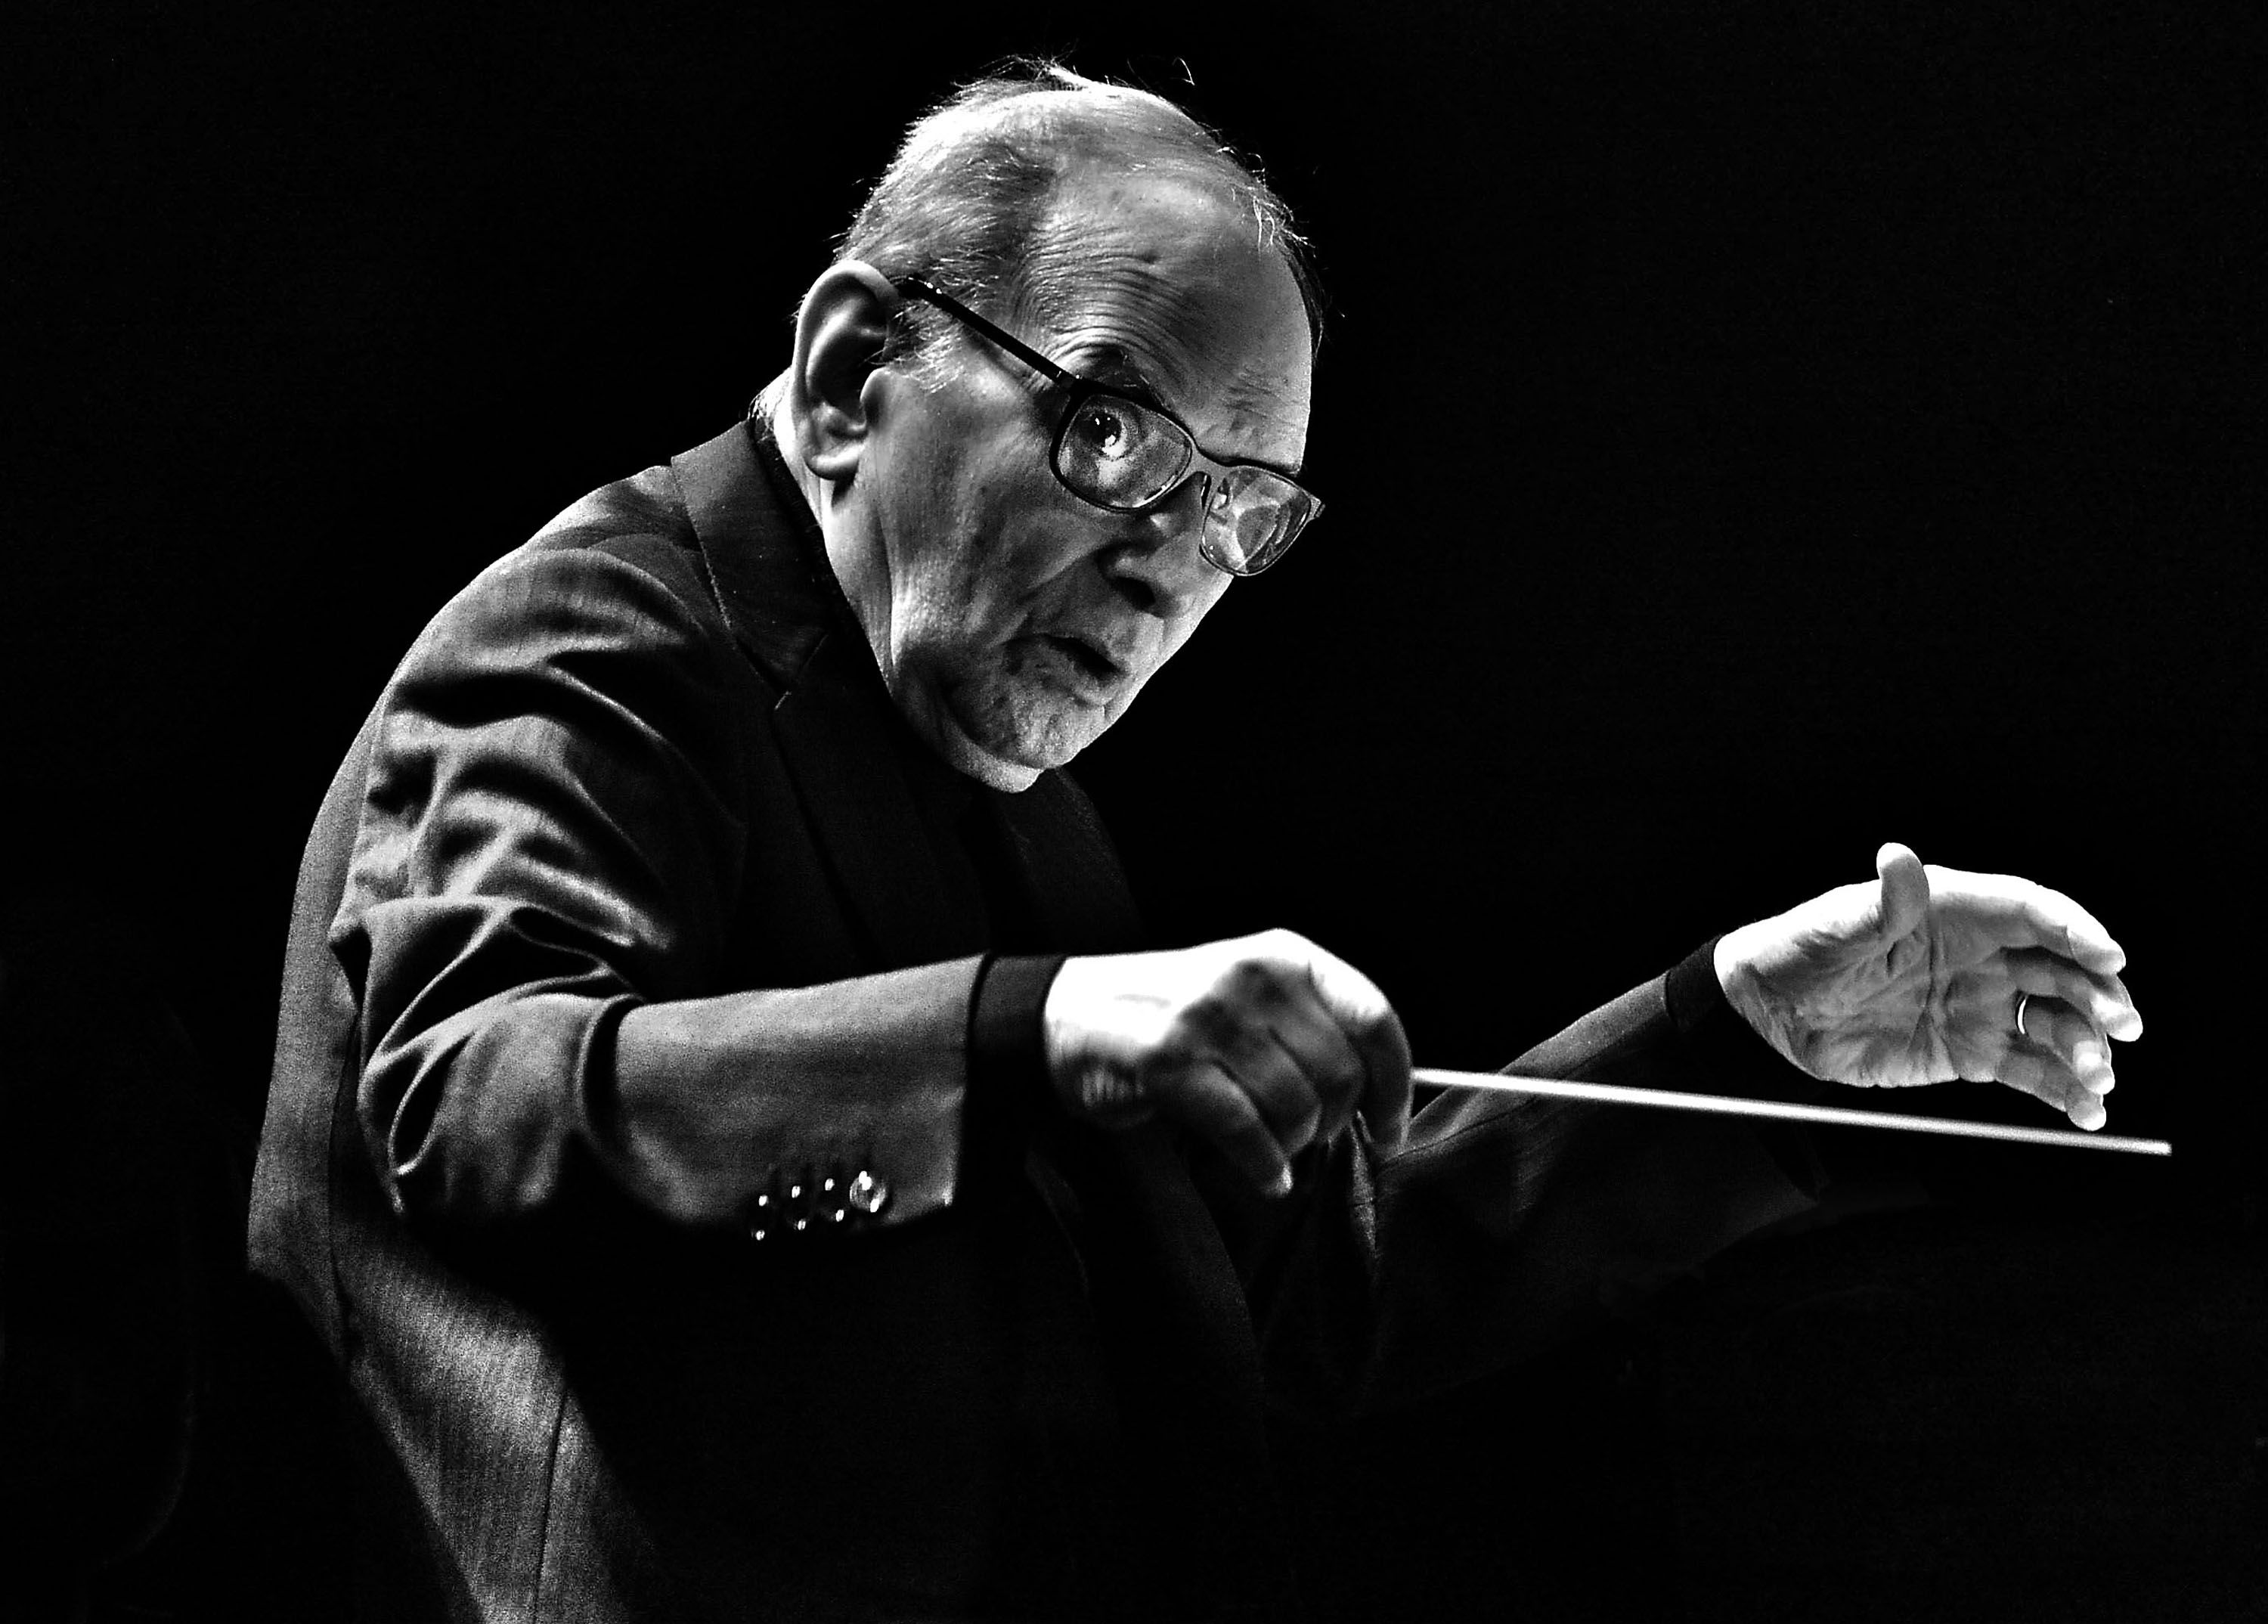 Ennio Morricone's Music Transformed the Way We Experience Film